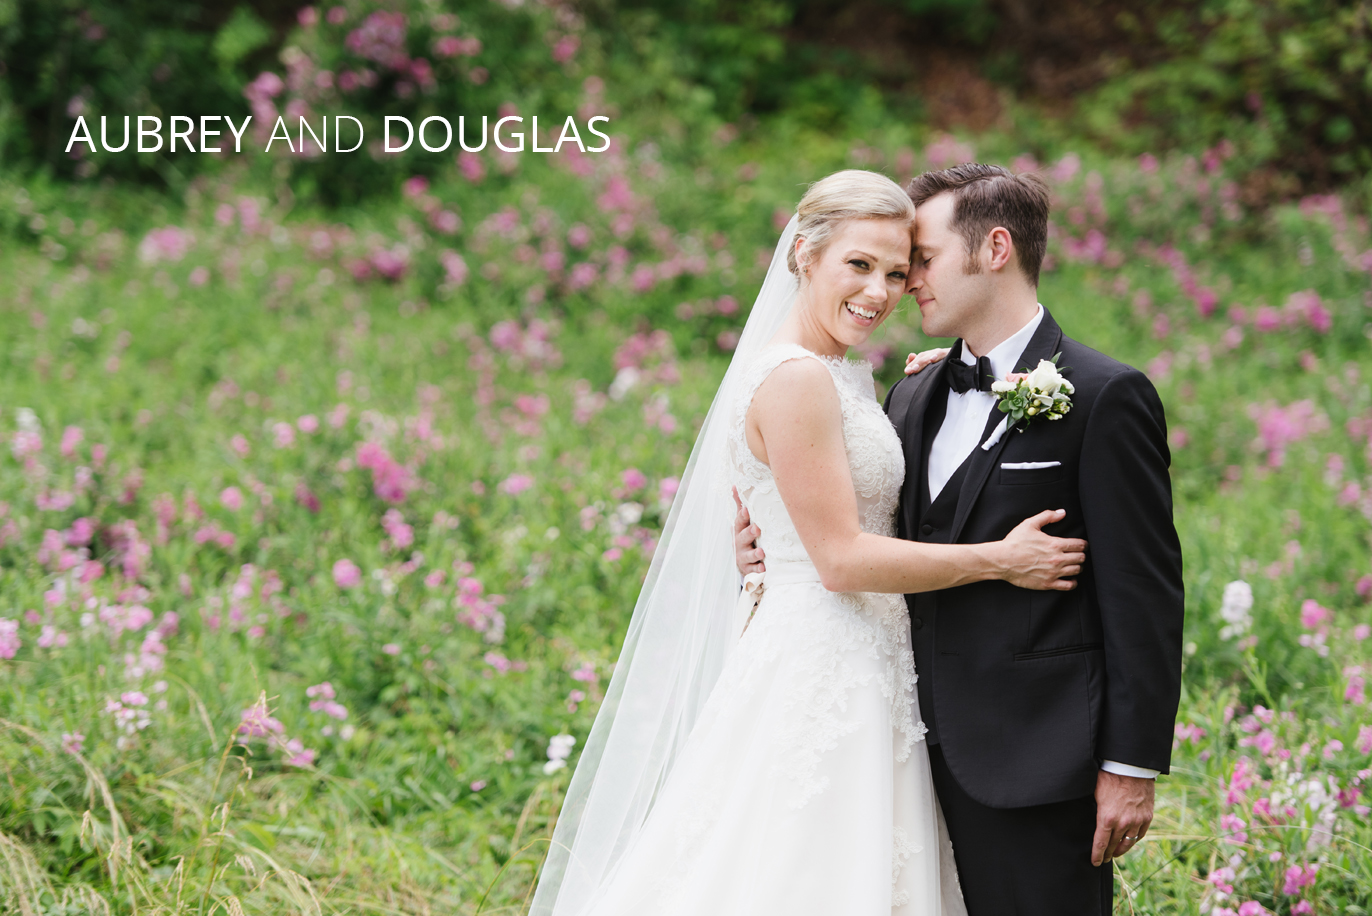 aubrey and douglas in a field of flowers